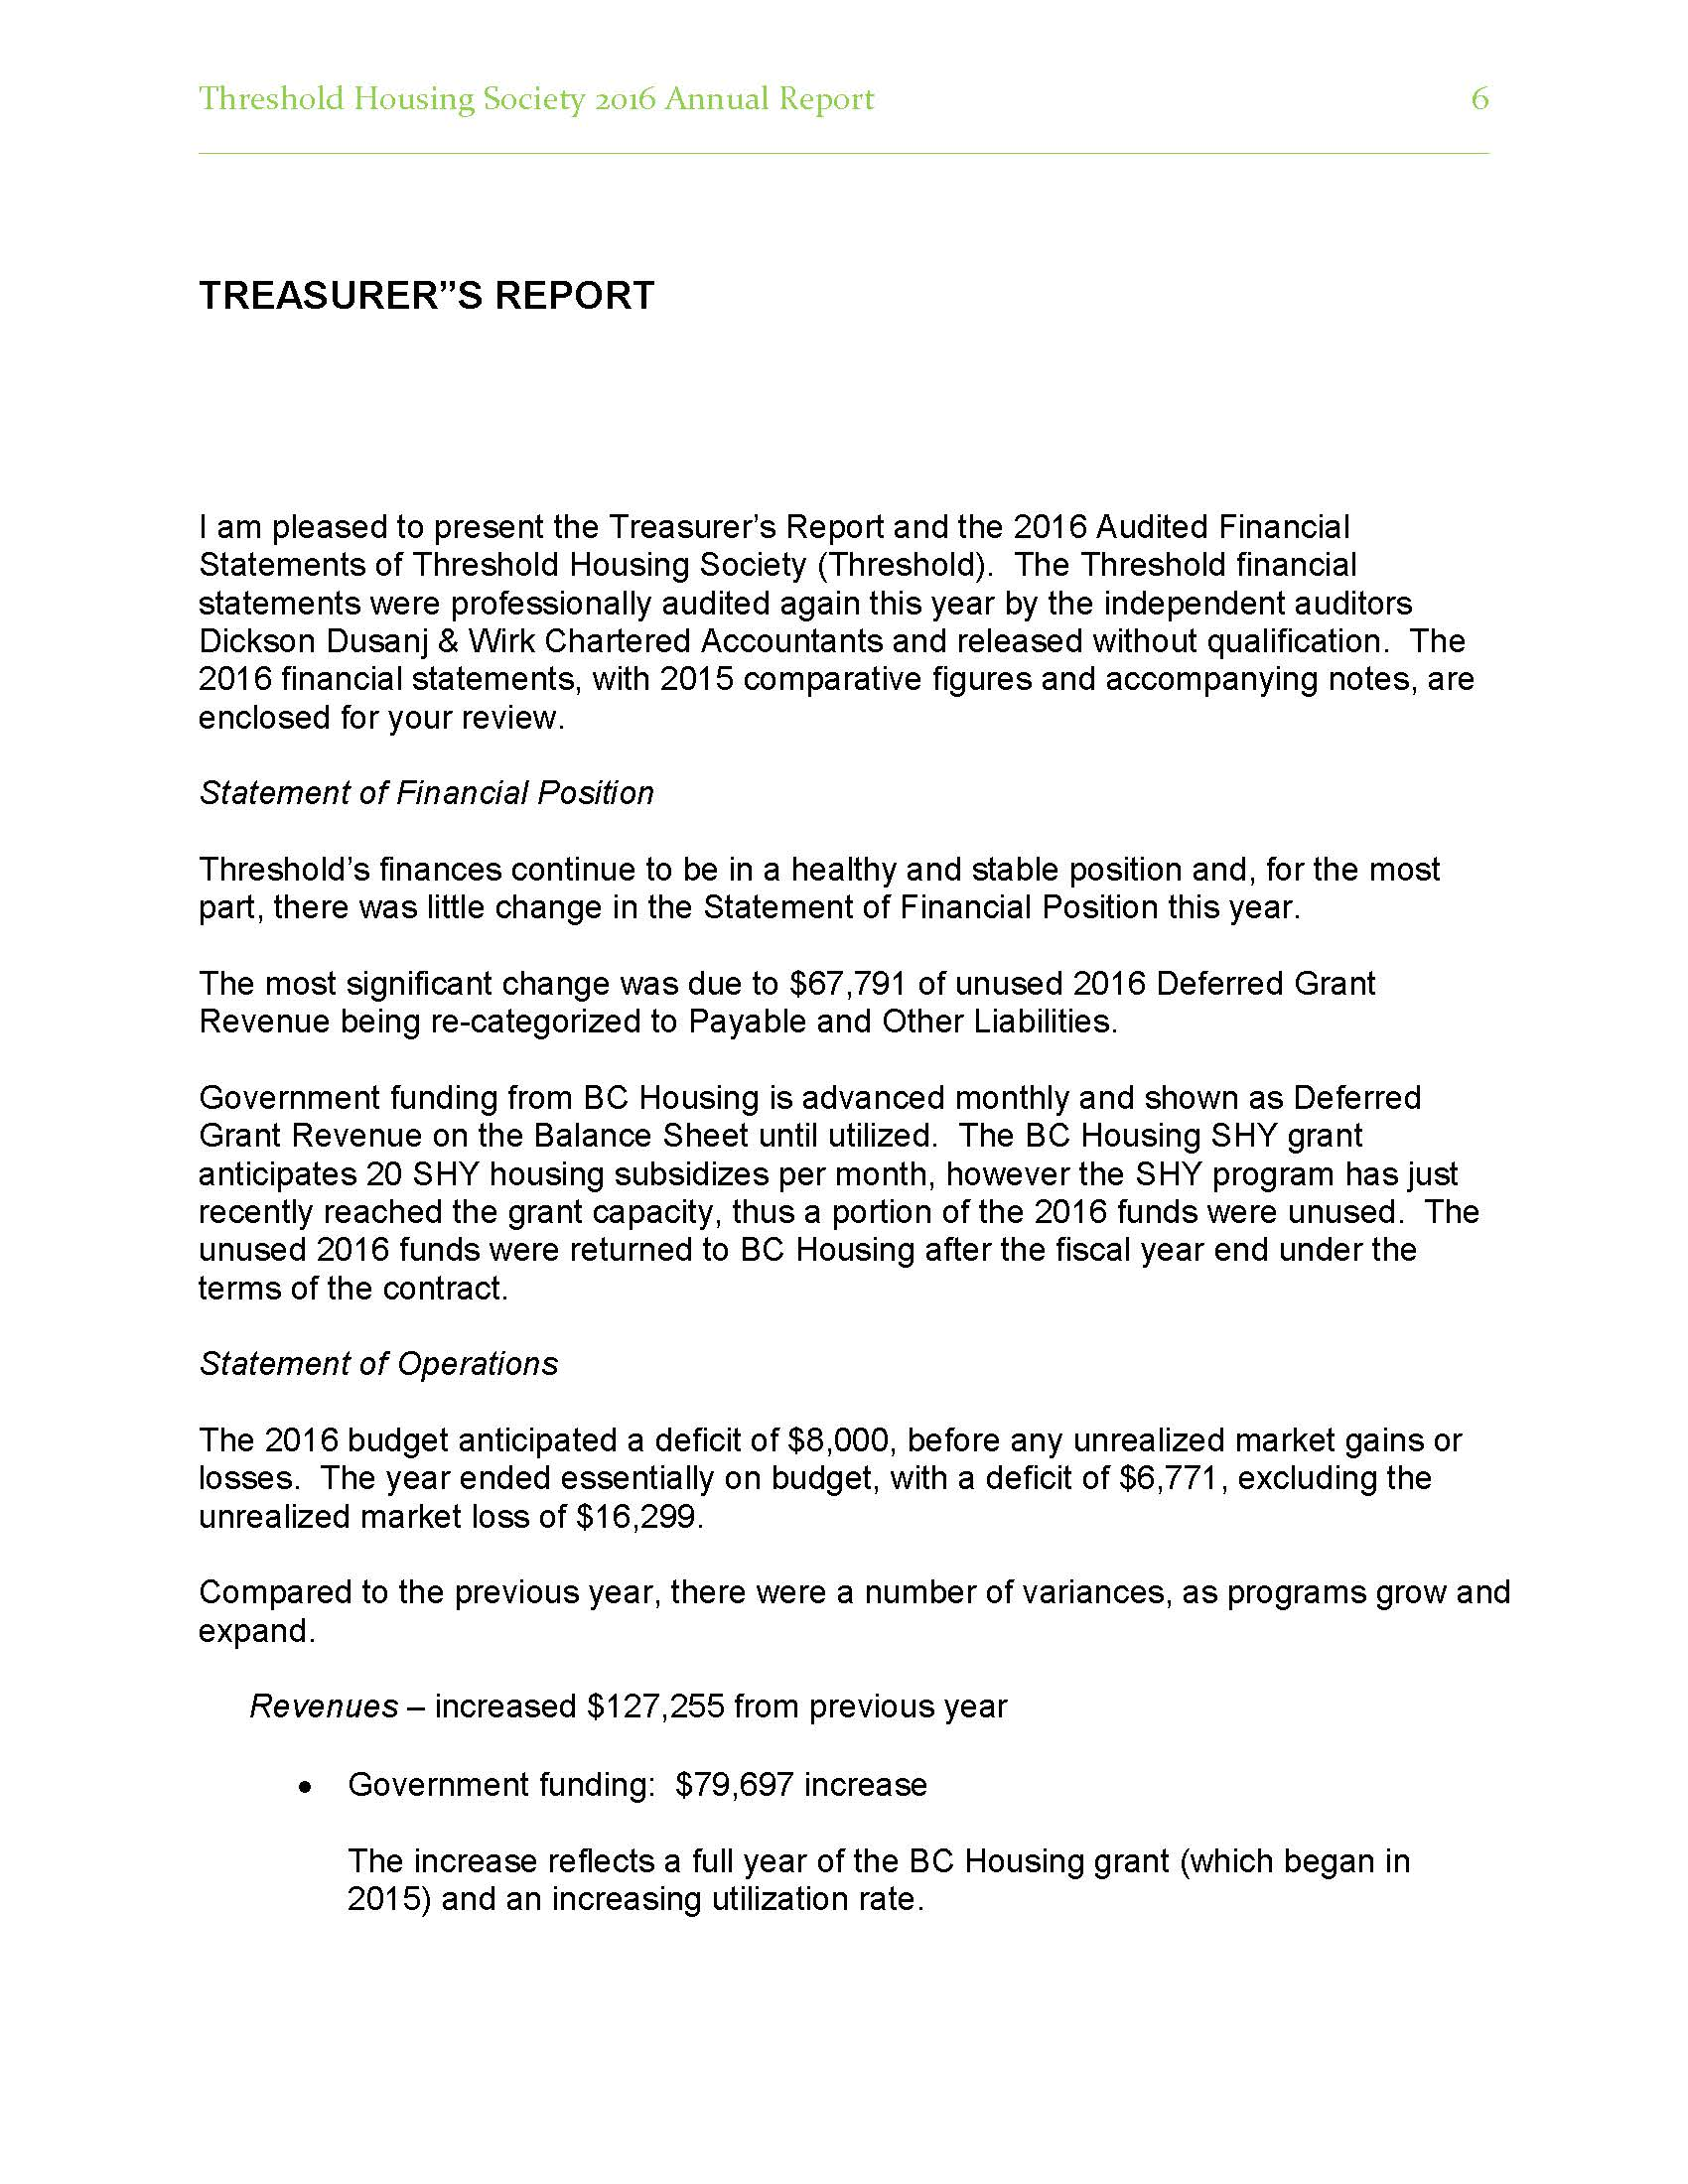 2016_THS_AnnualReport-FINAL compressed_Page_09